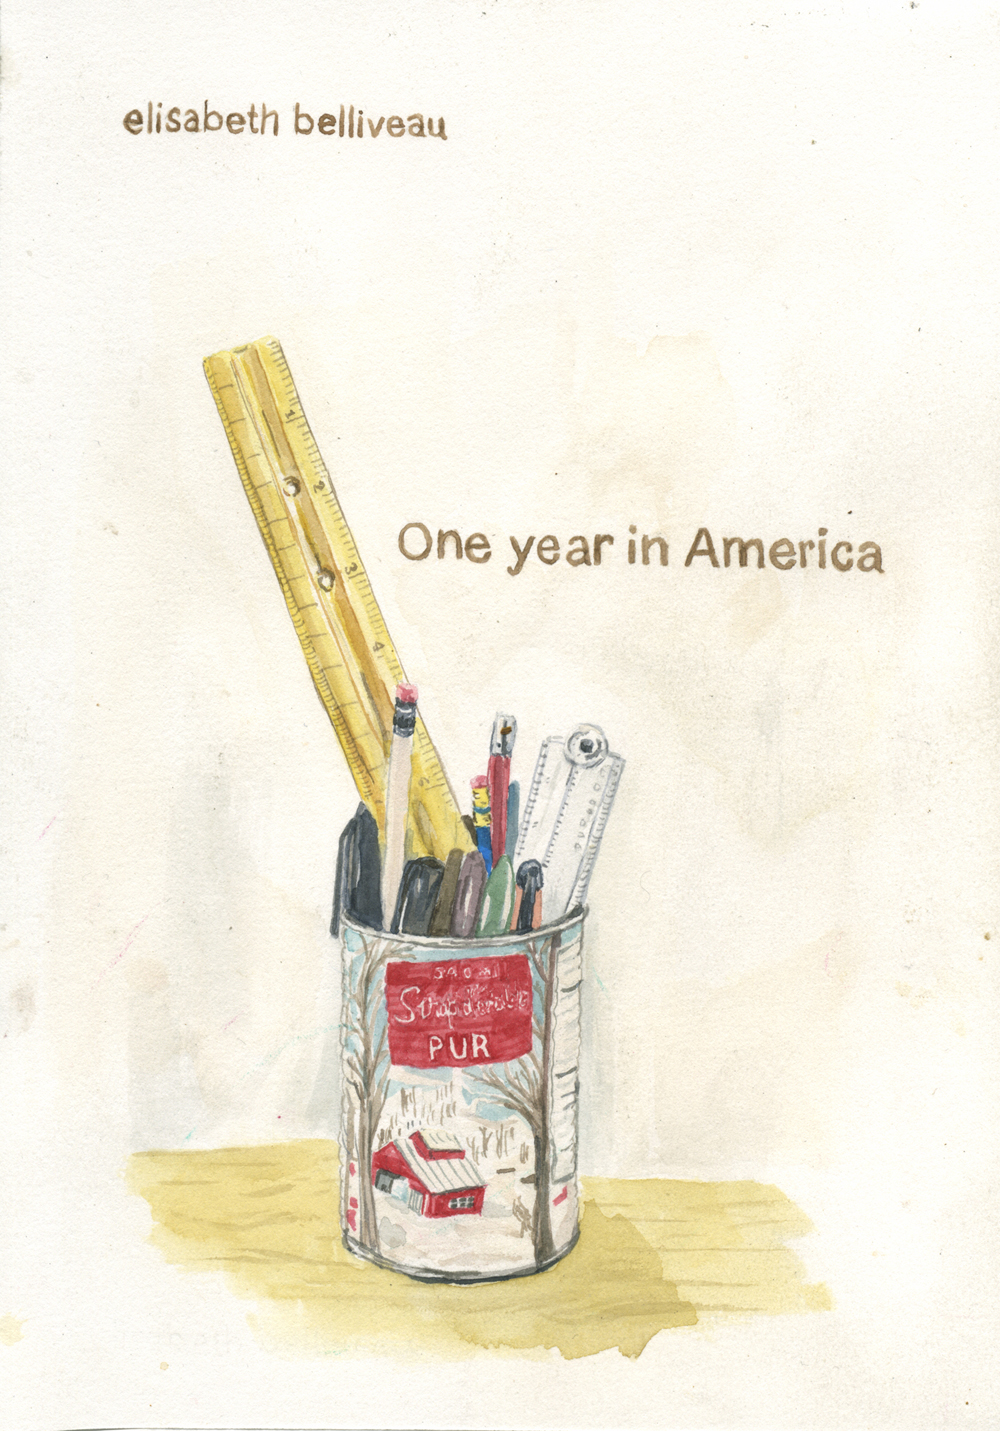 http://www.conundrumpress.com/new-titles/one-year-in-america/